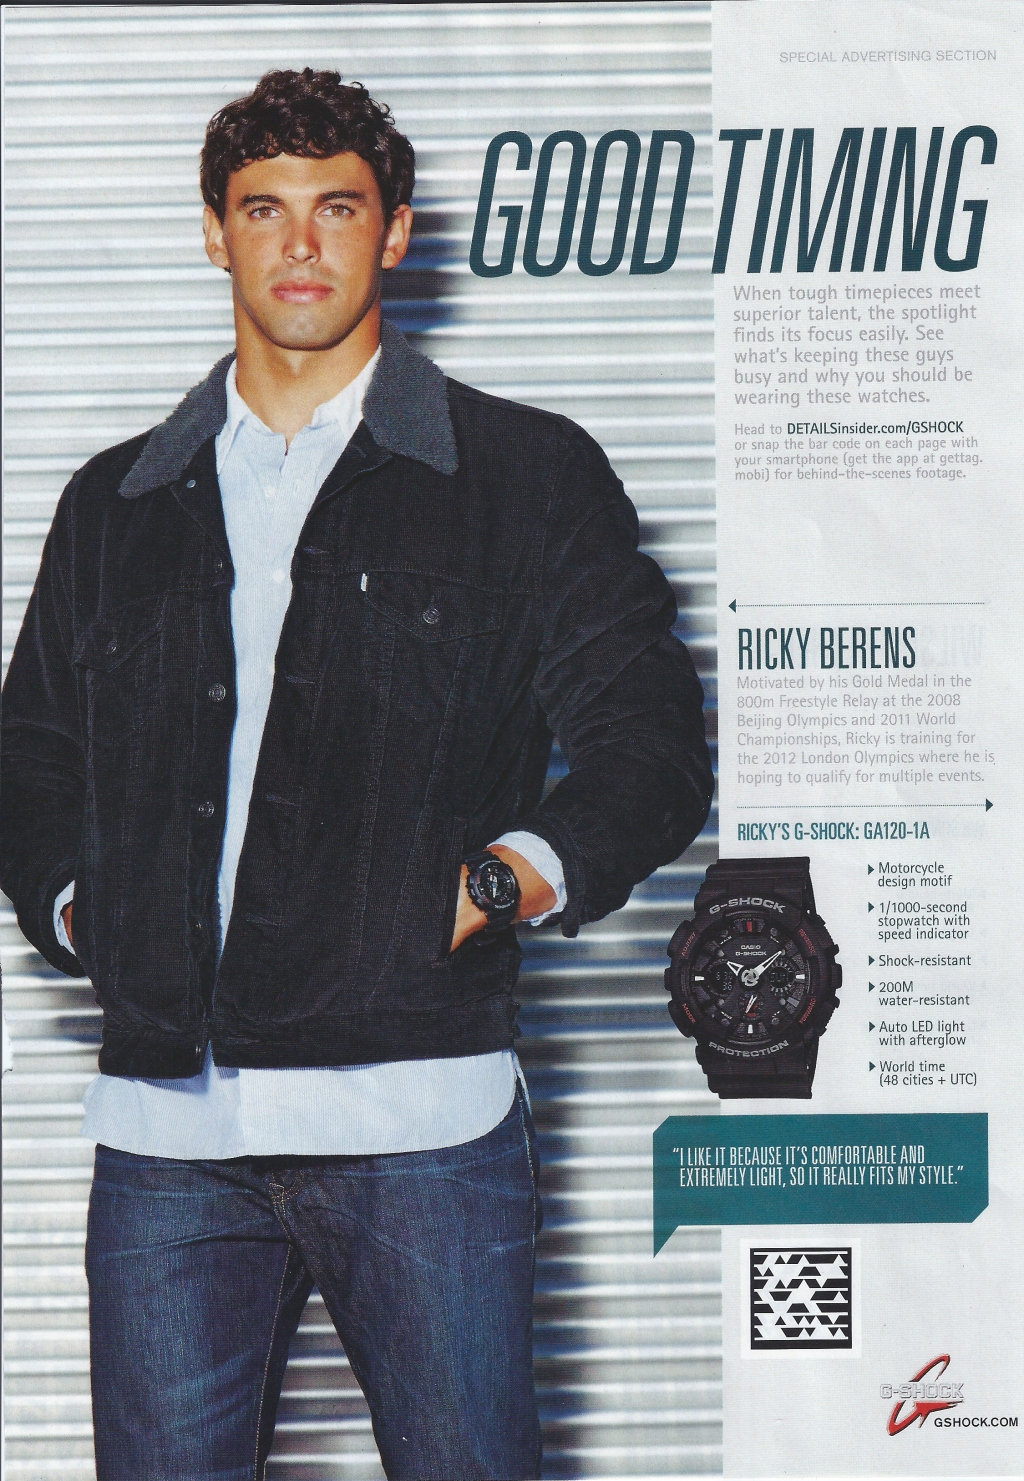 Watch Ad. Good Timing. Ricky Berens for G-Shock